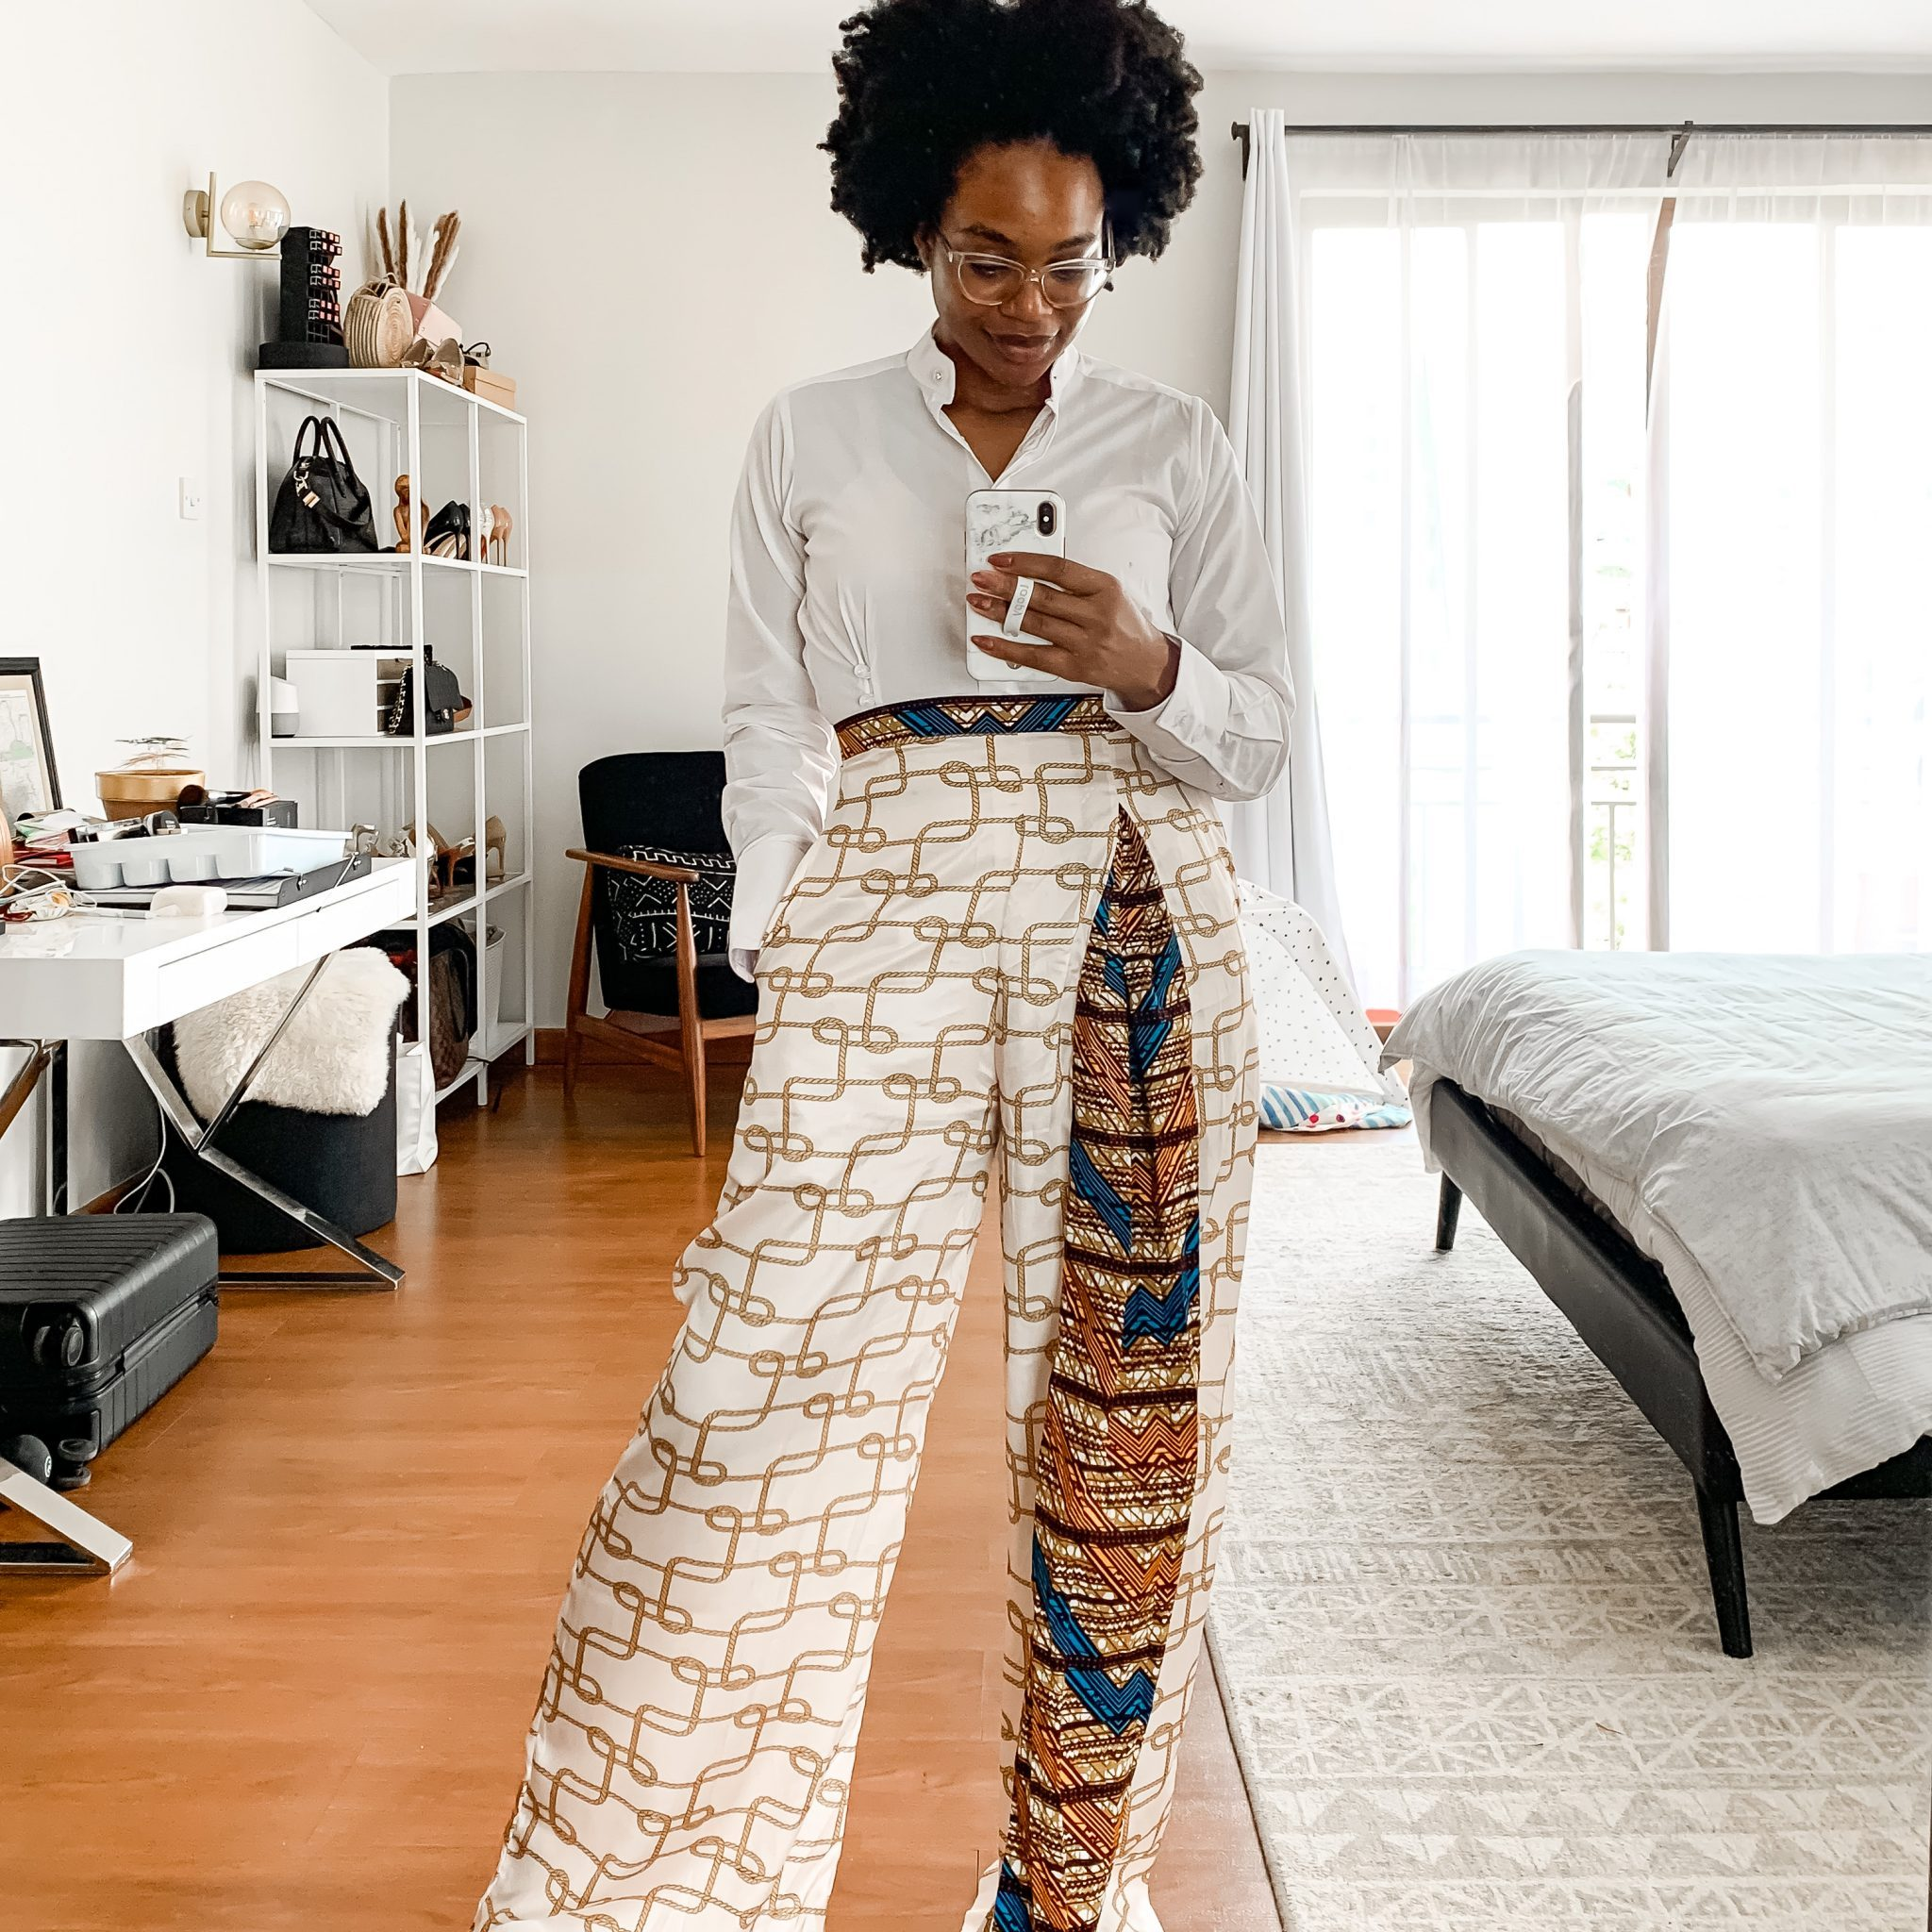 IJeoma. kola.posing in print pants and white shirt taking mirror selfie - Financial lessons blog